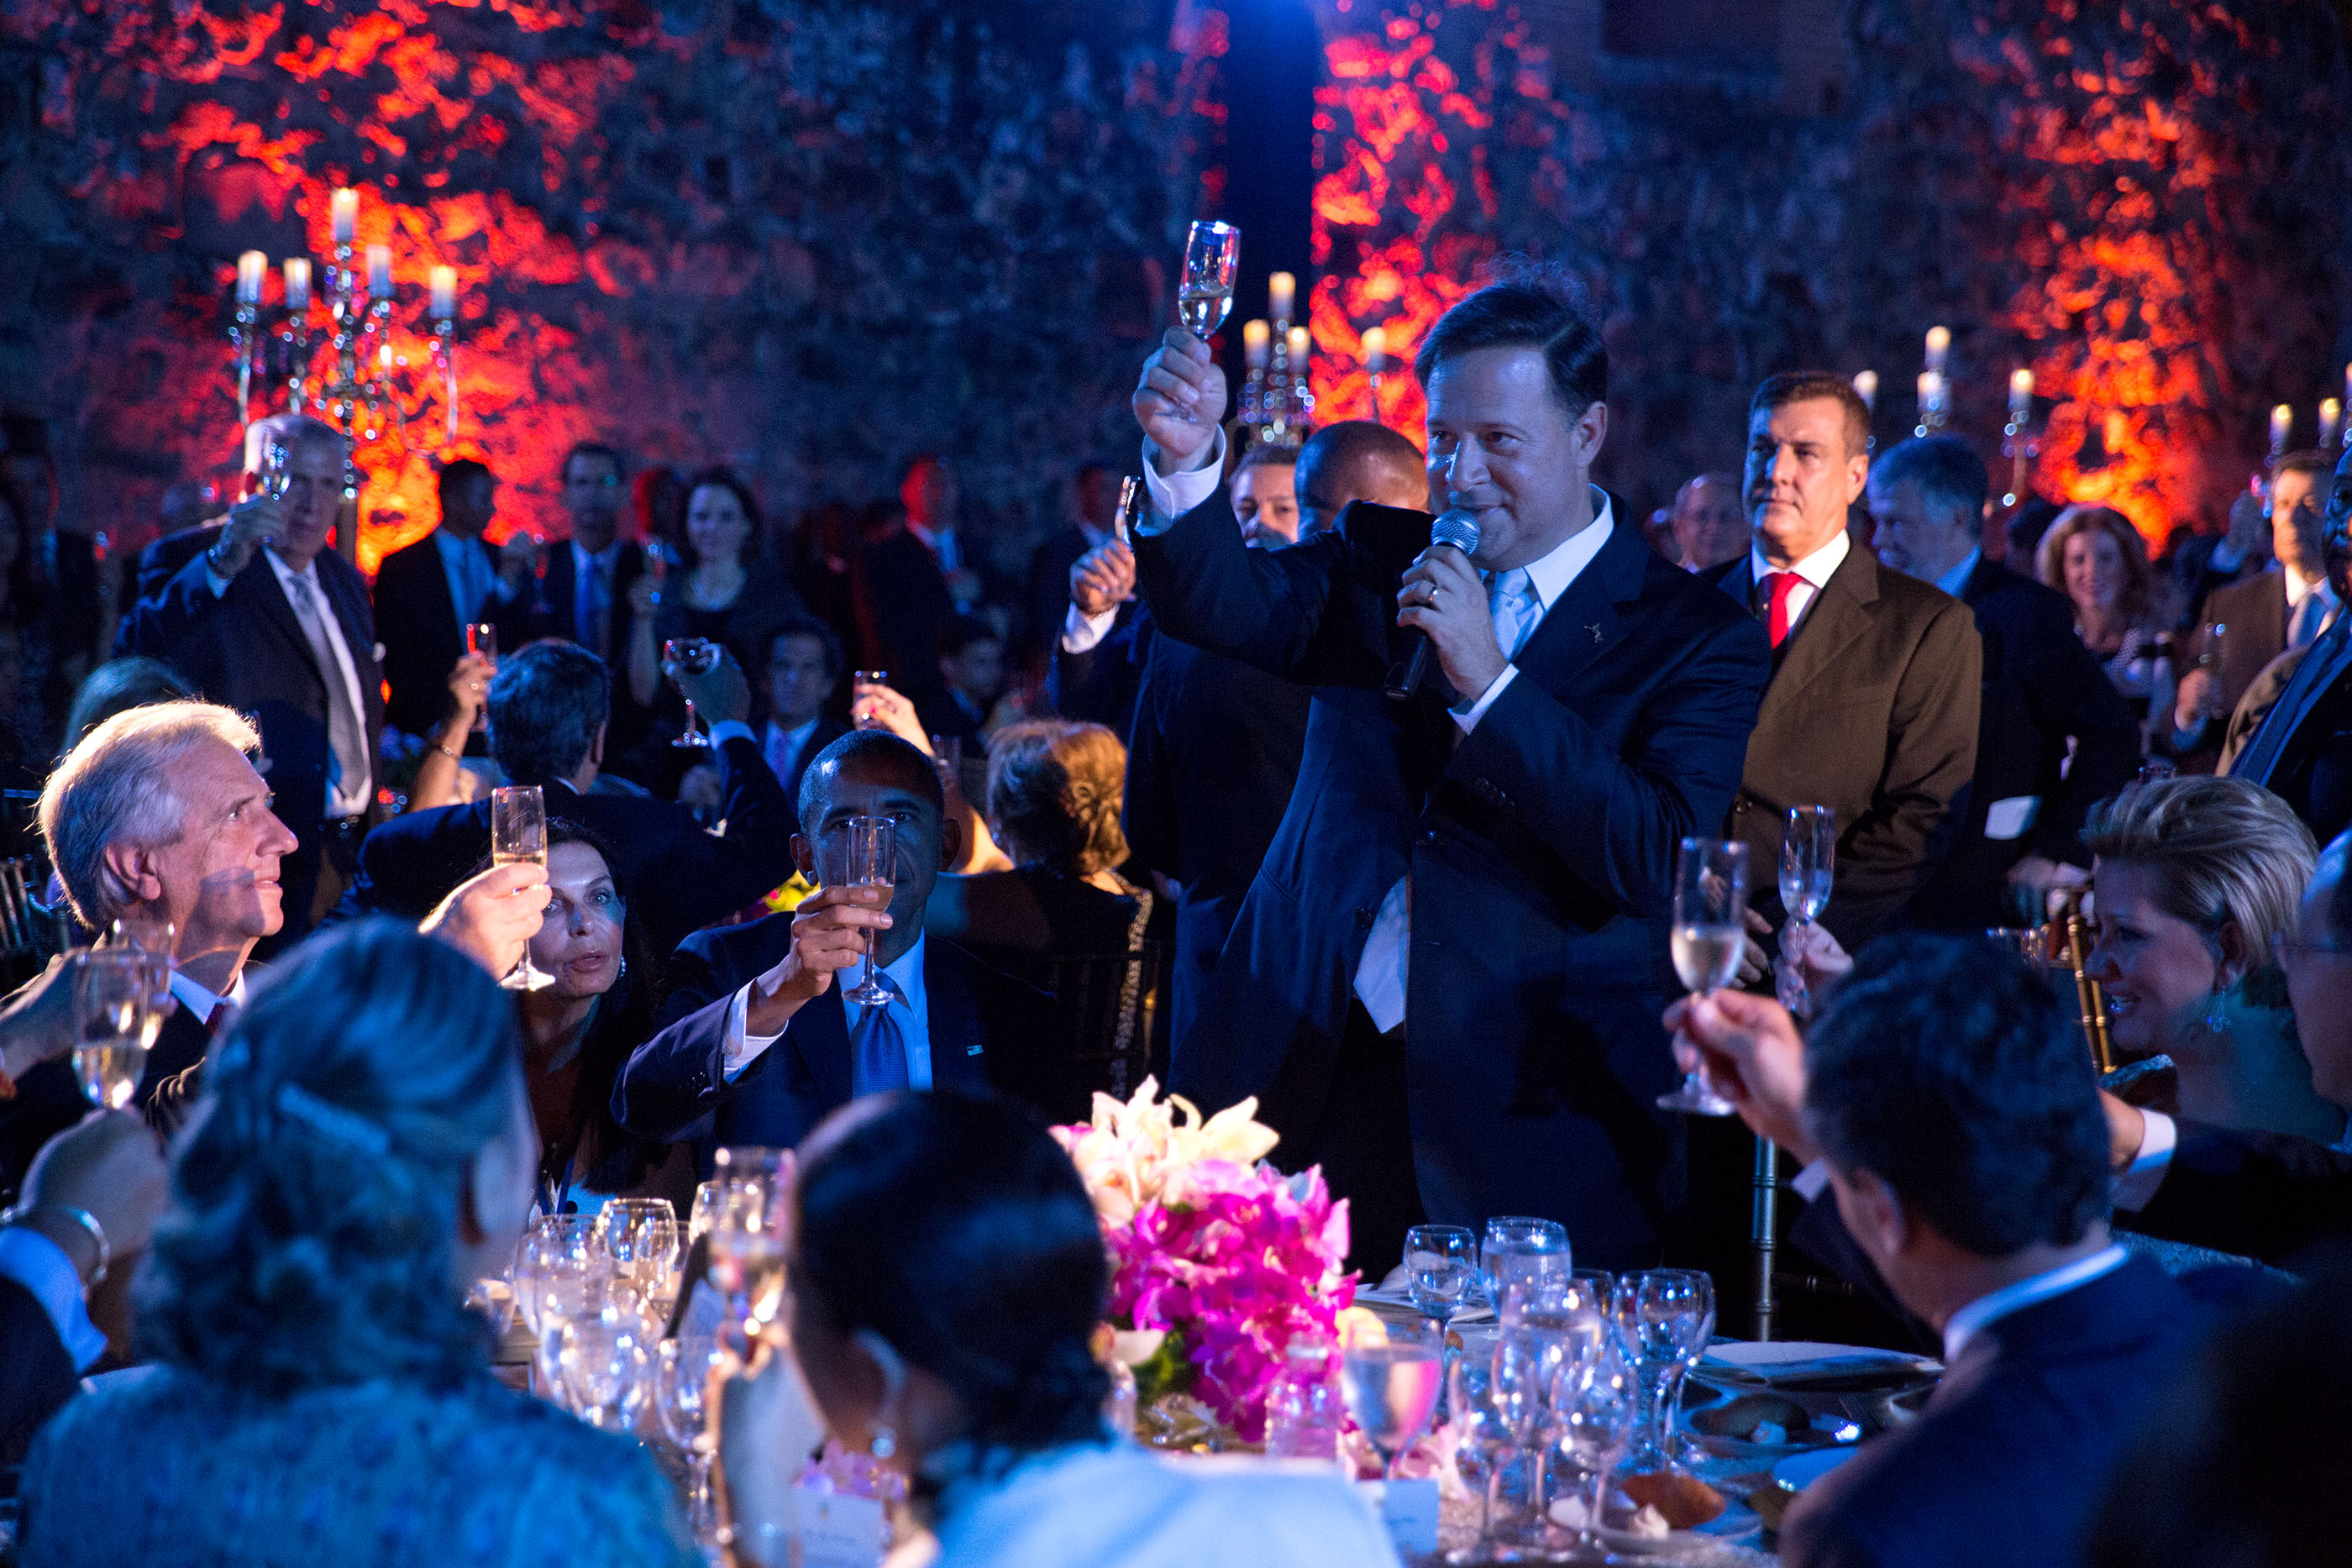 President Varela offers a toast at the Summit of the Americas leaders dinner at Panama Viejo. (Official White House Photo by Pete Souza)